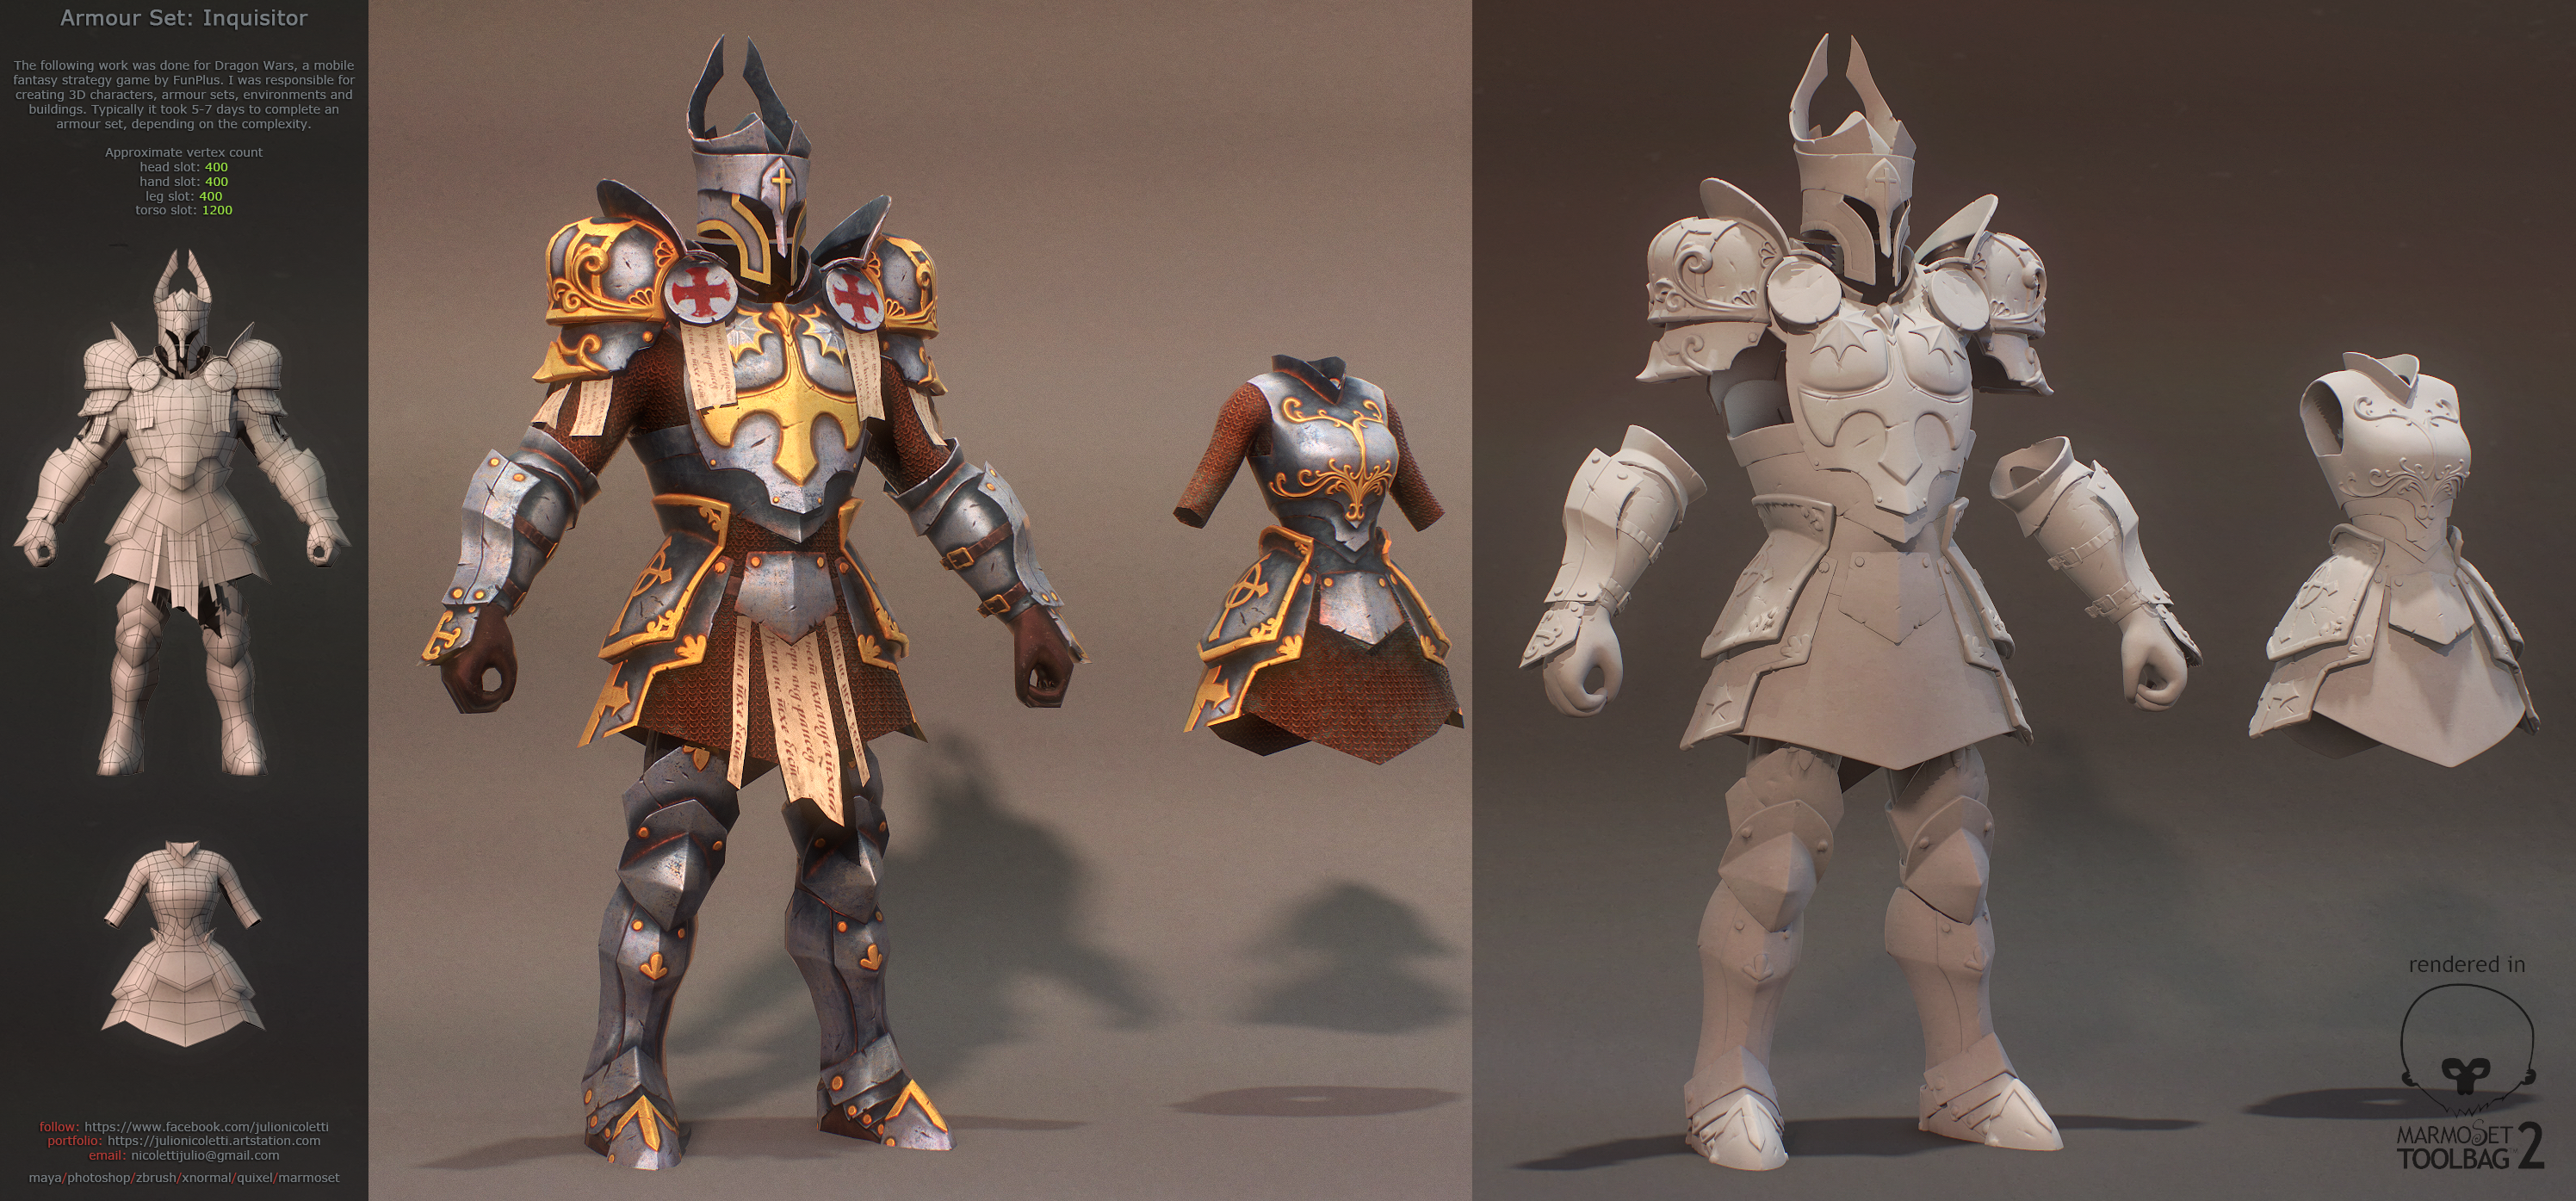 armour_set__inquisitor_by_julionicoletti-d942aa6.png